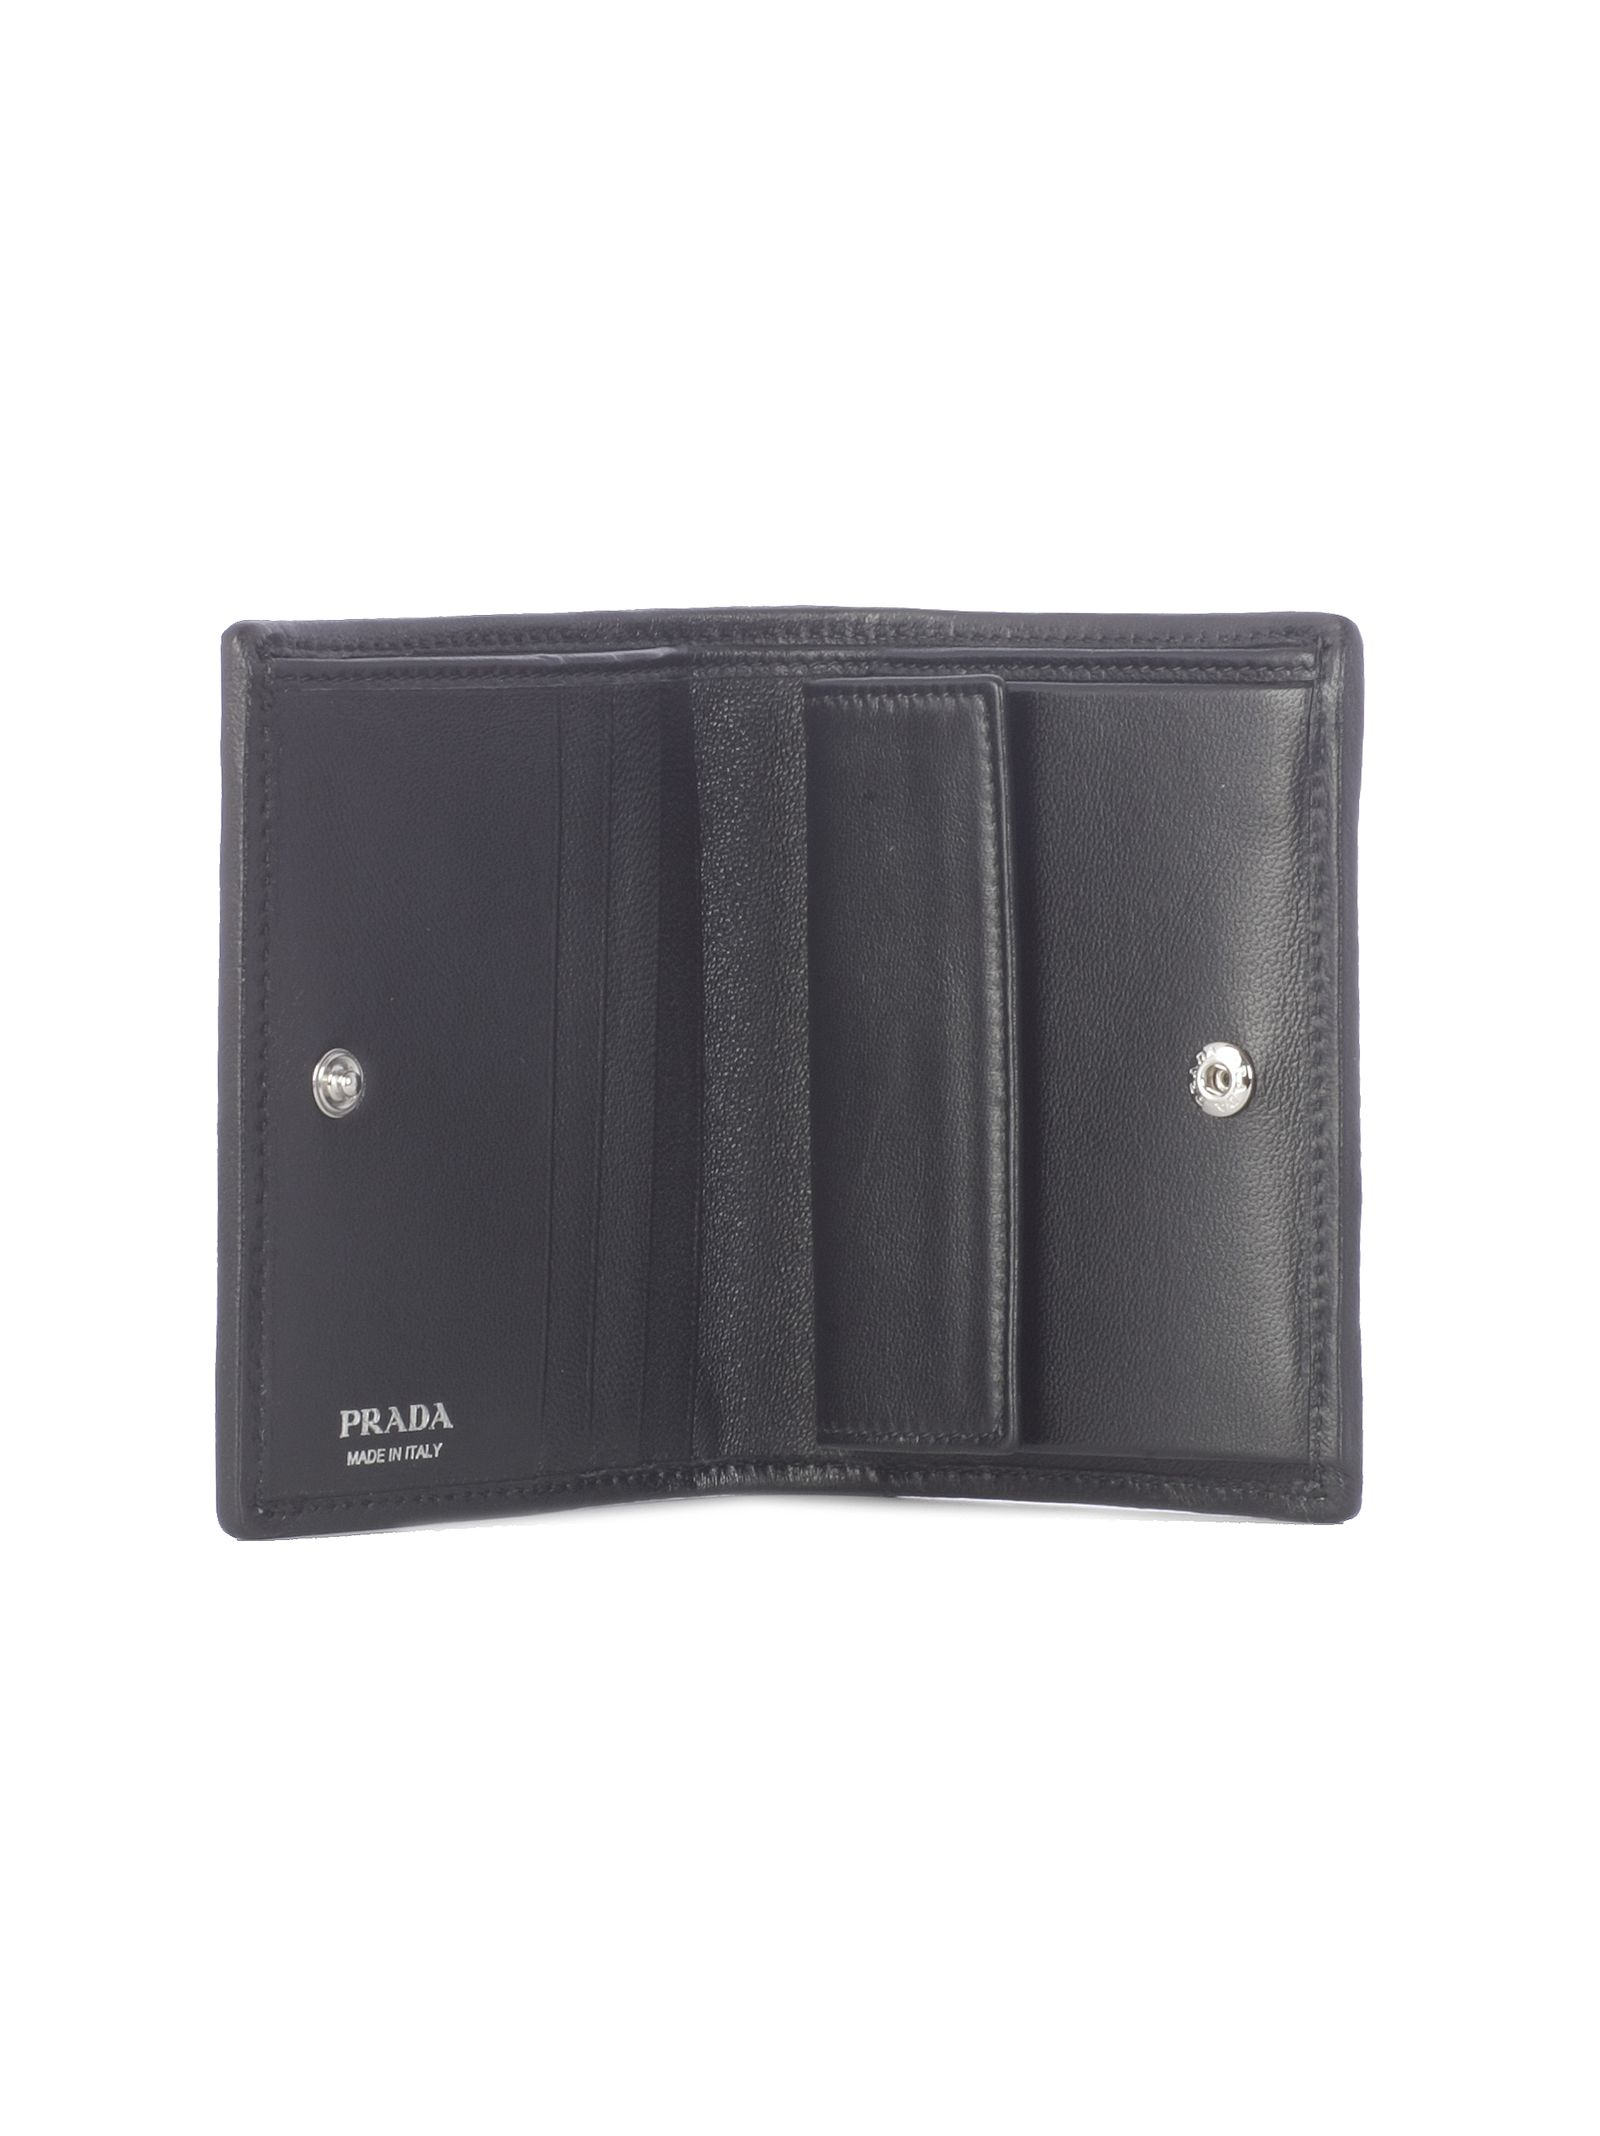 e40448c8d Prada Prada Diagramme French Wallet - Black - 10805491 | italist